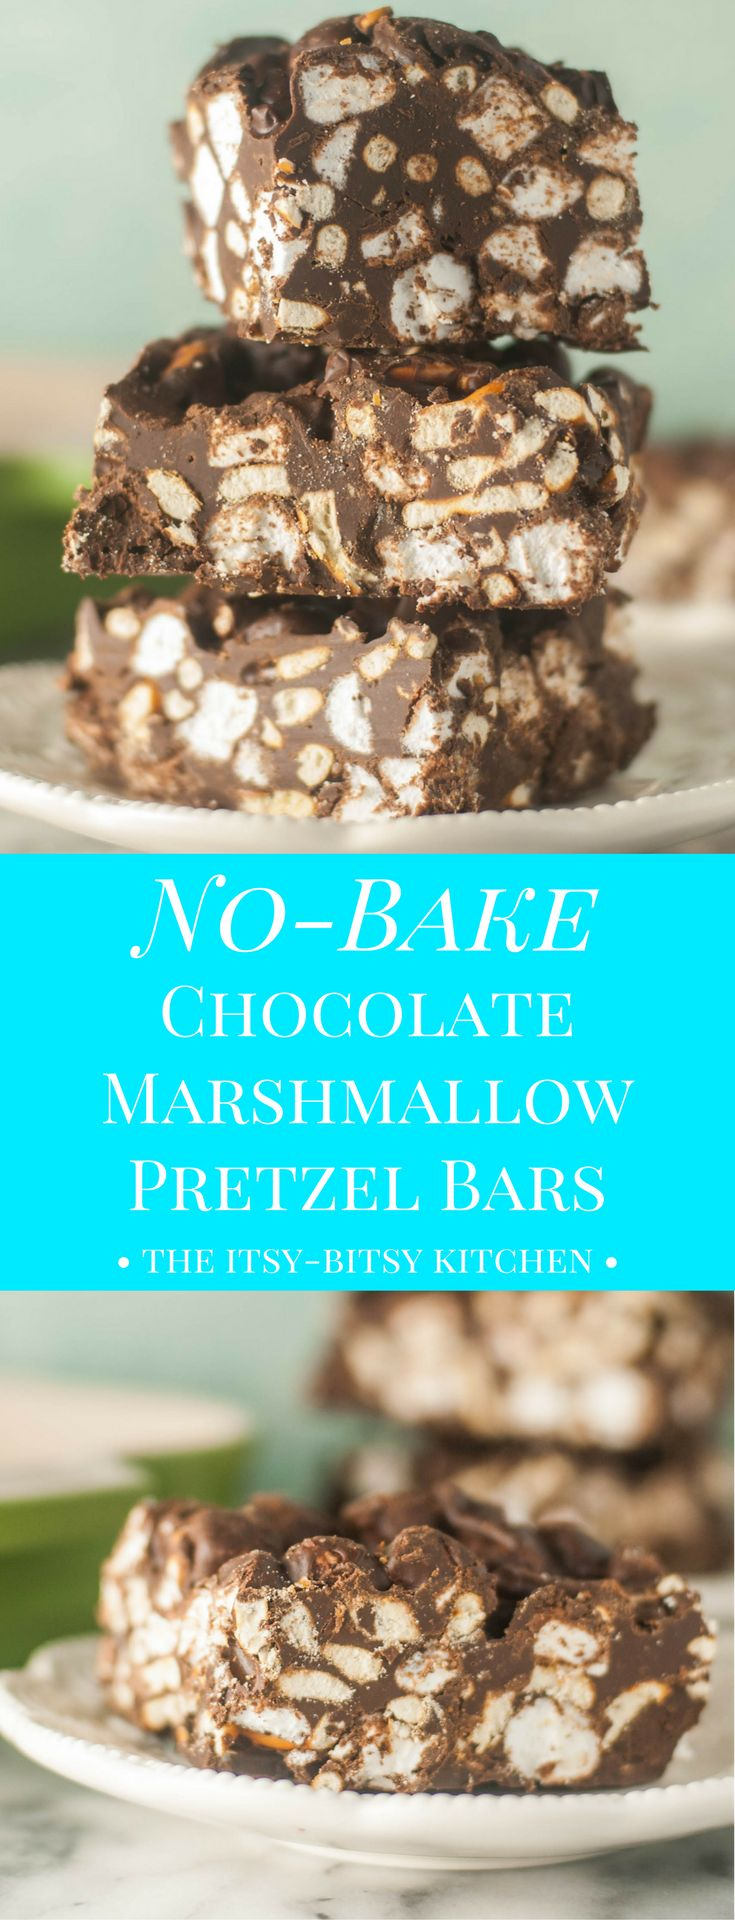 A simple no-bake cookie, these chocolate marshmallow pretzel bars are the perfect dessert for summer or any time of year!